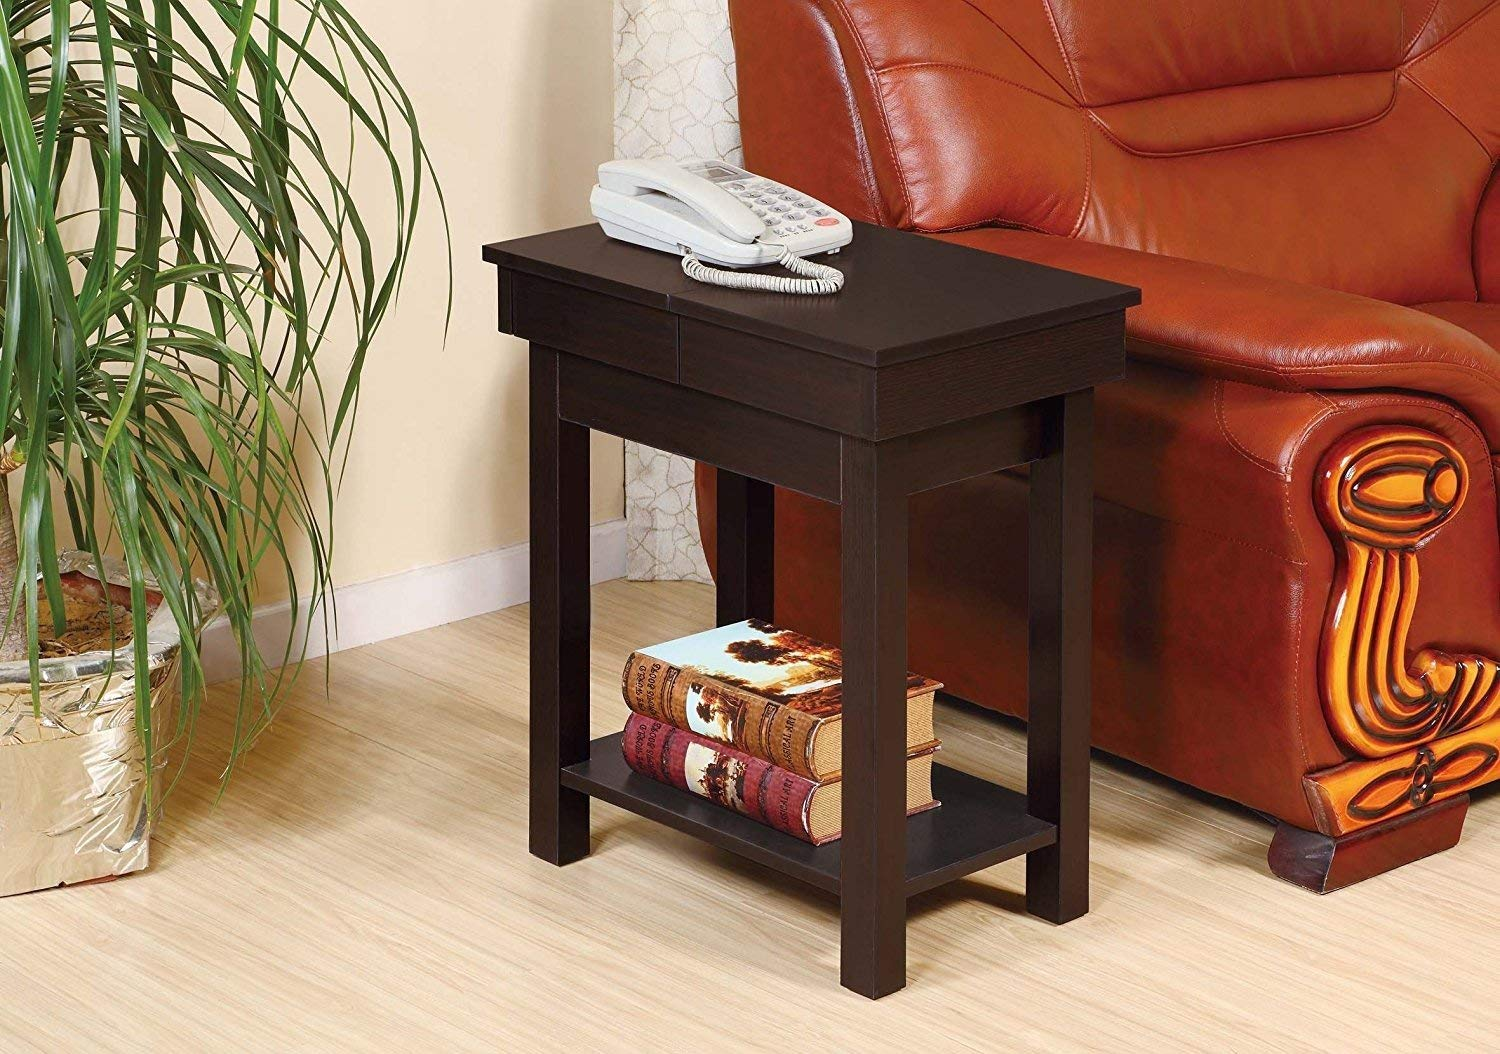 Indoor Multi-Function Accent Table Study Computer Home Office Desk Bedroom Living Room Modern Style End Table Sofa Side Table Coffee Table Seat table